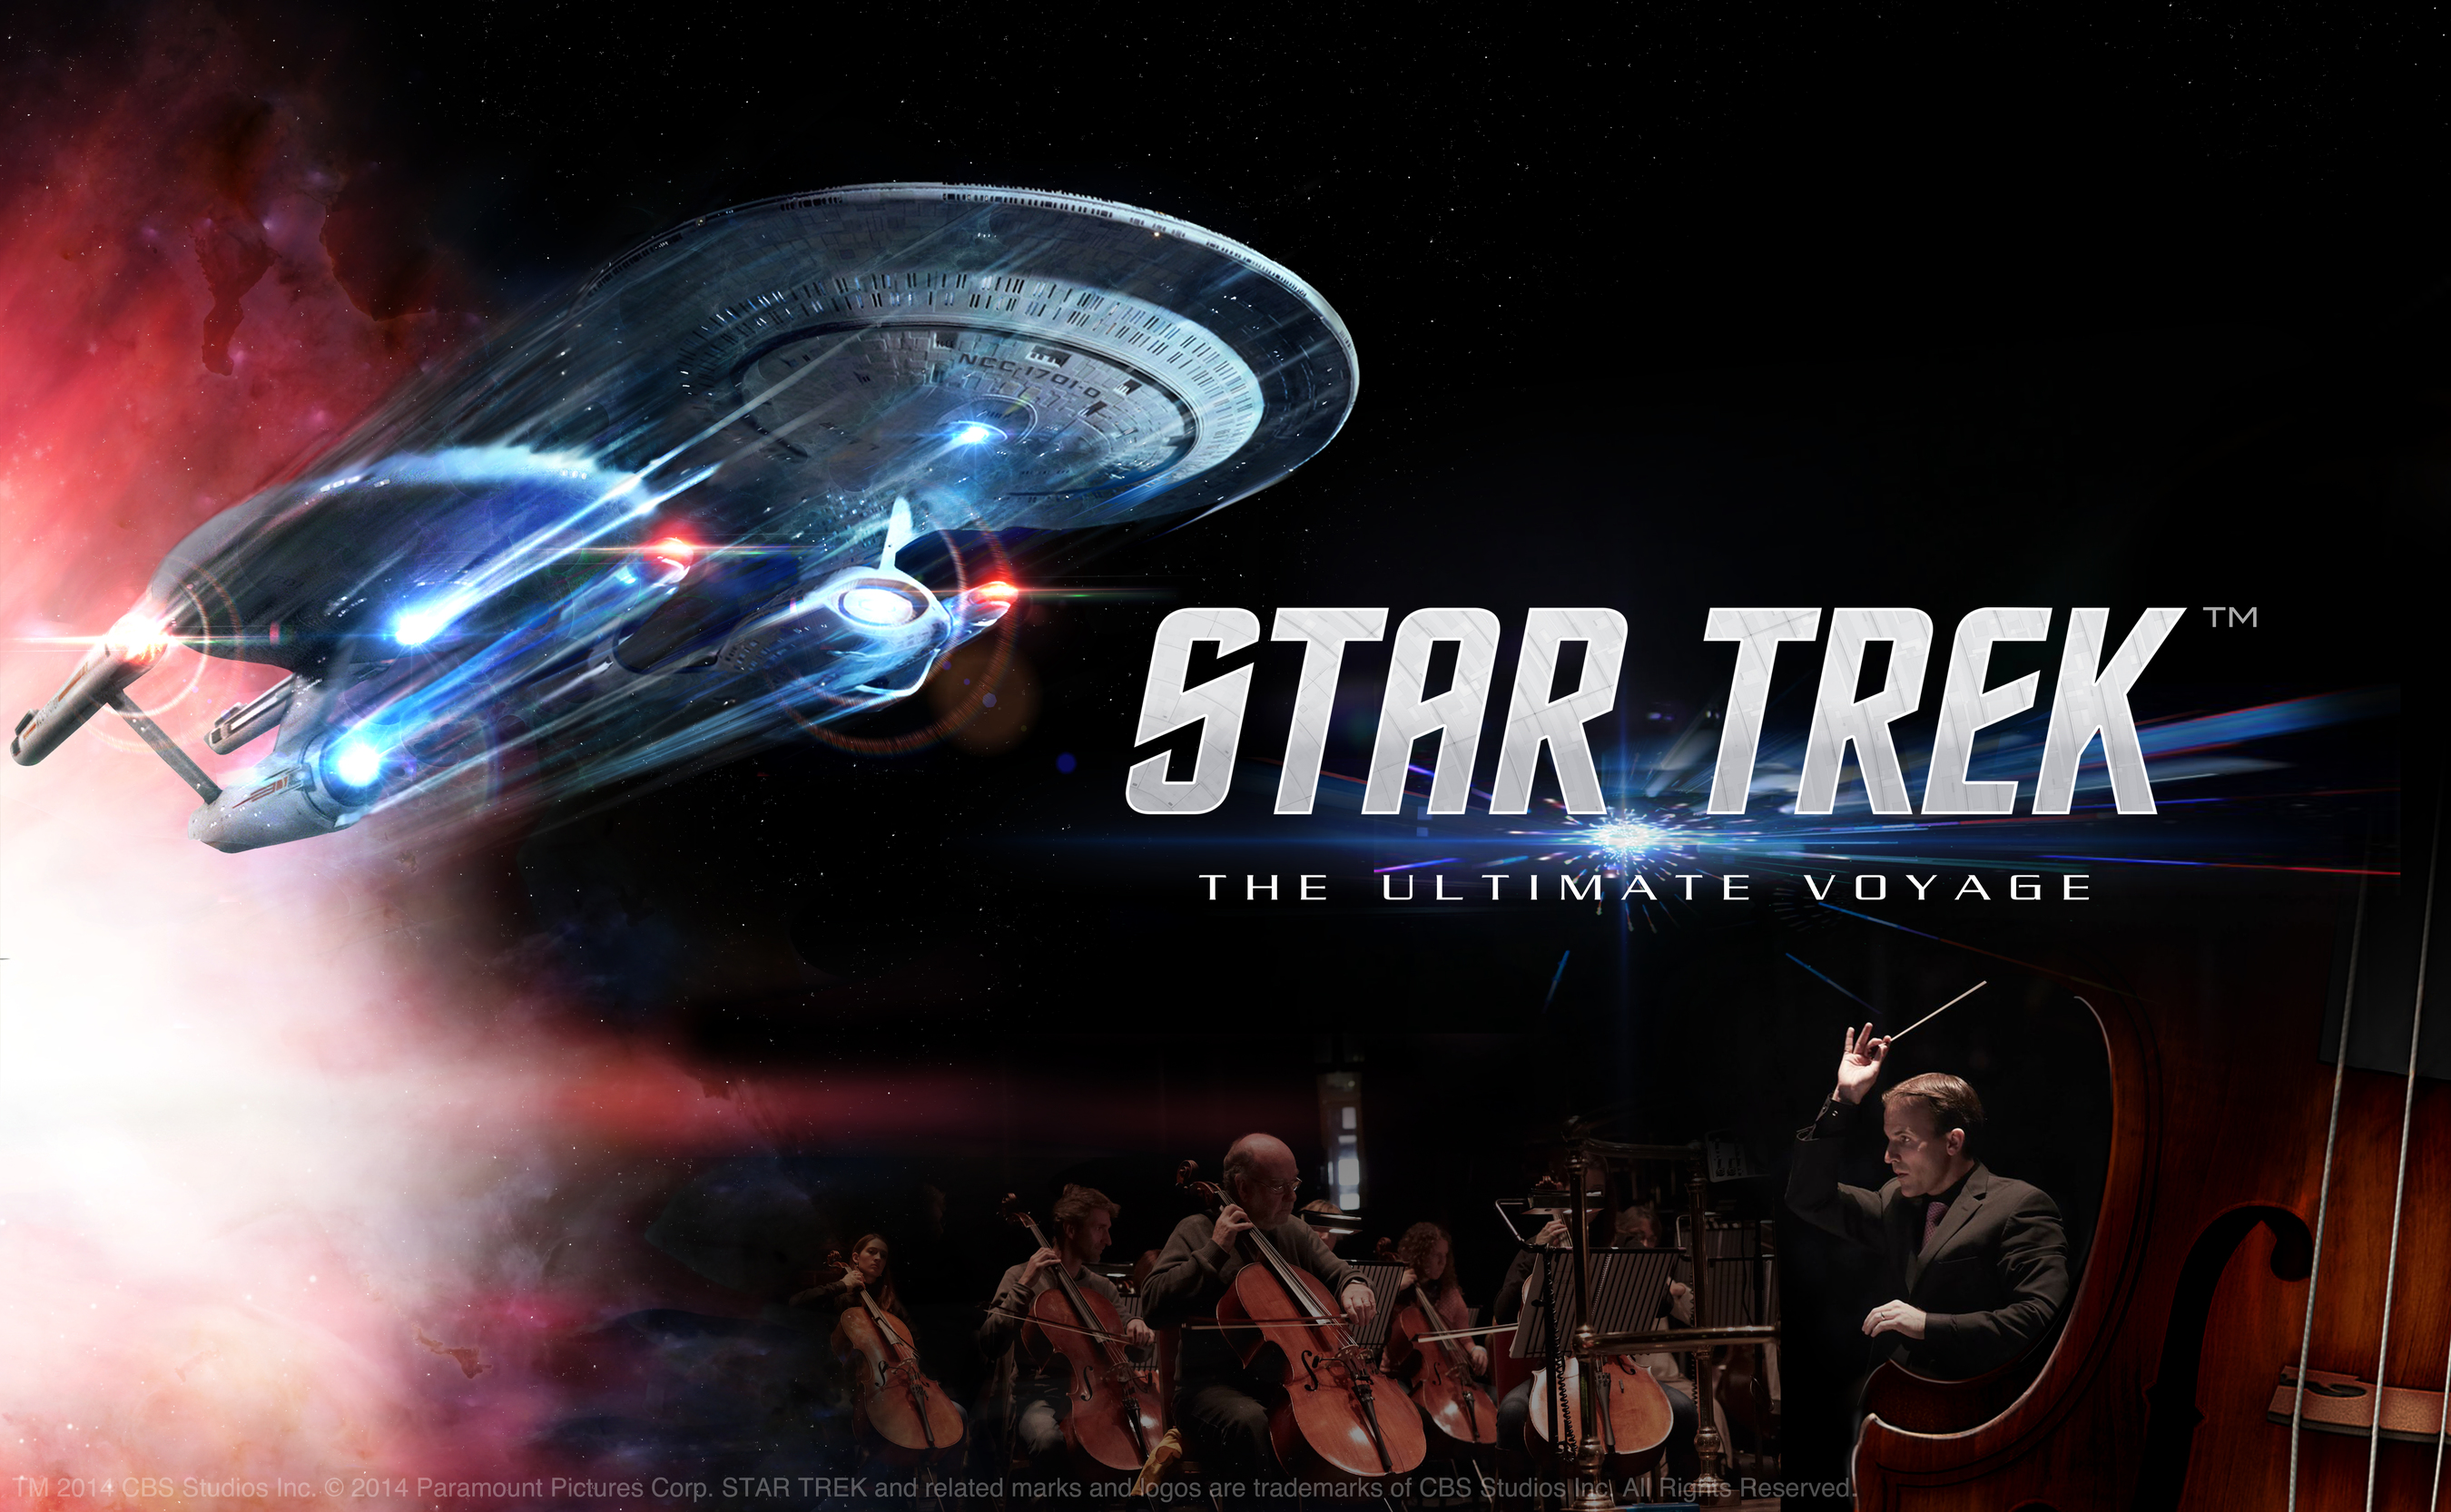 Star Trek: The Ultimate Voyage - North American Tour begins January 2016